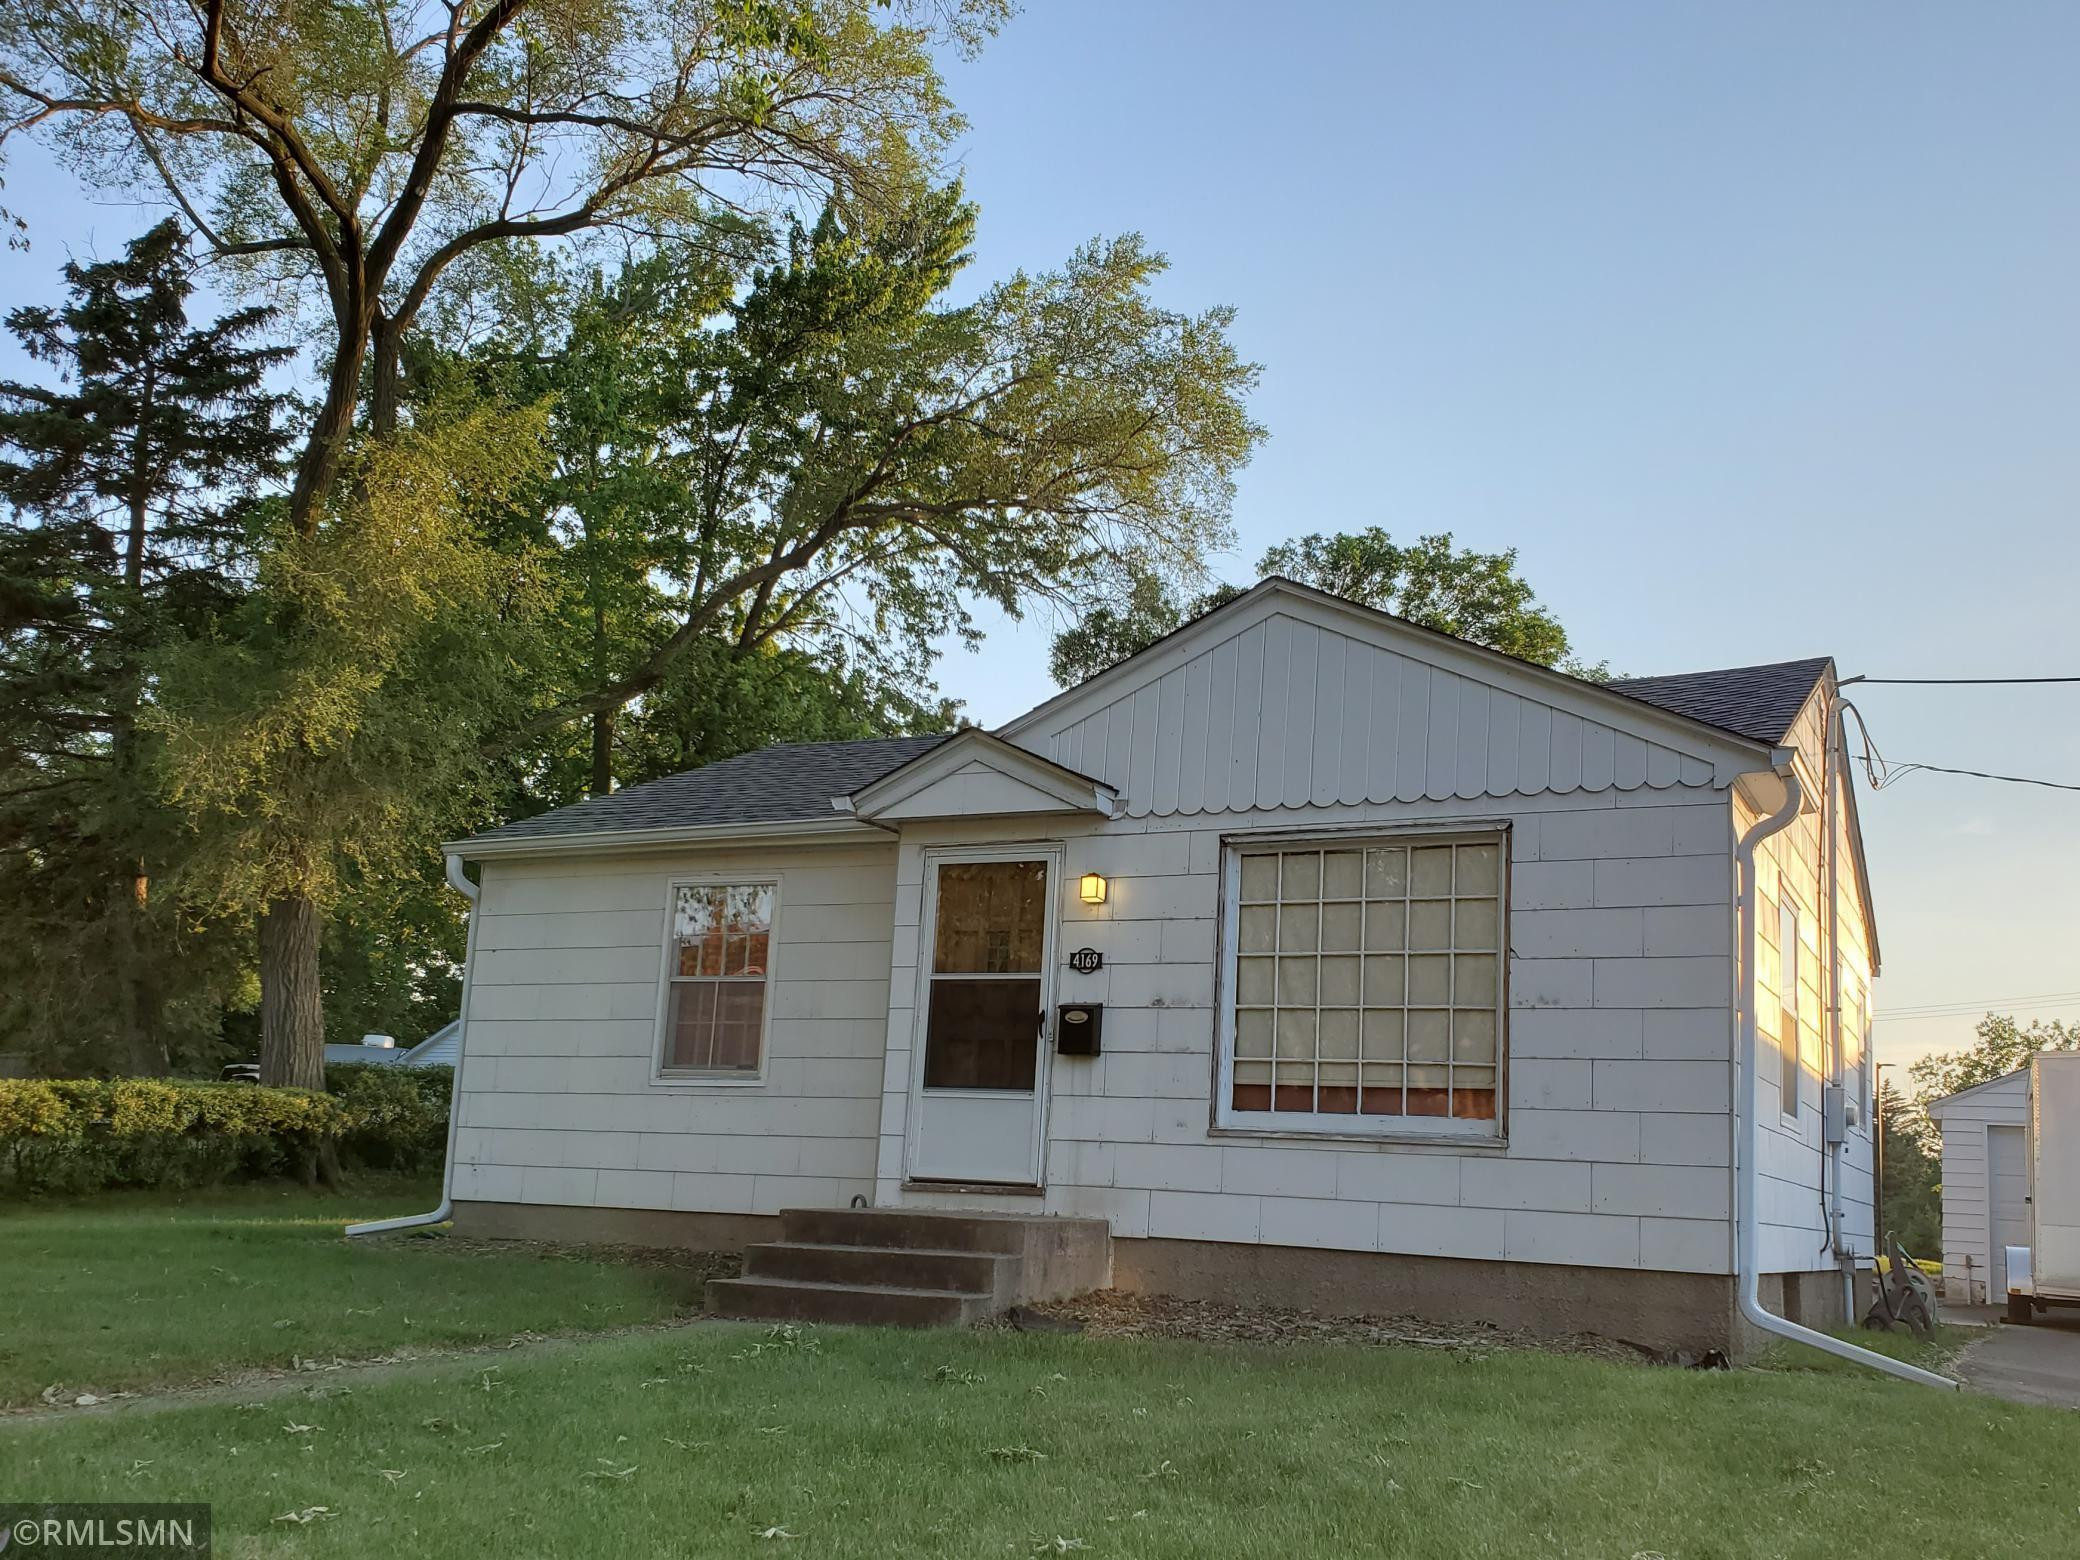 Cute rambler with easy access to Highway 100, shopping, and dining, on the border of Robbinsdale, 10 minutes to downtown Minneapolis.